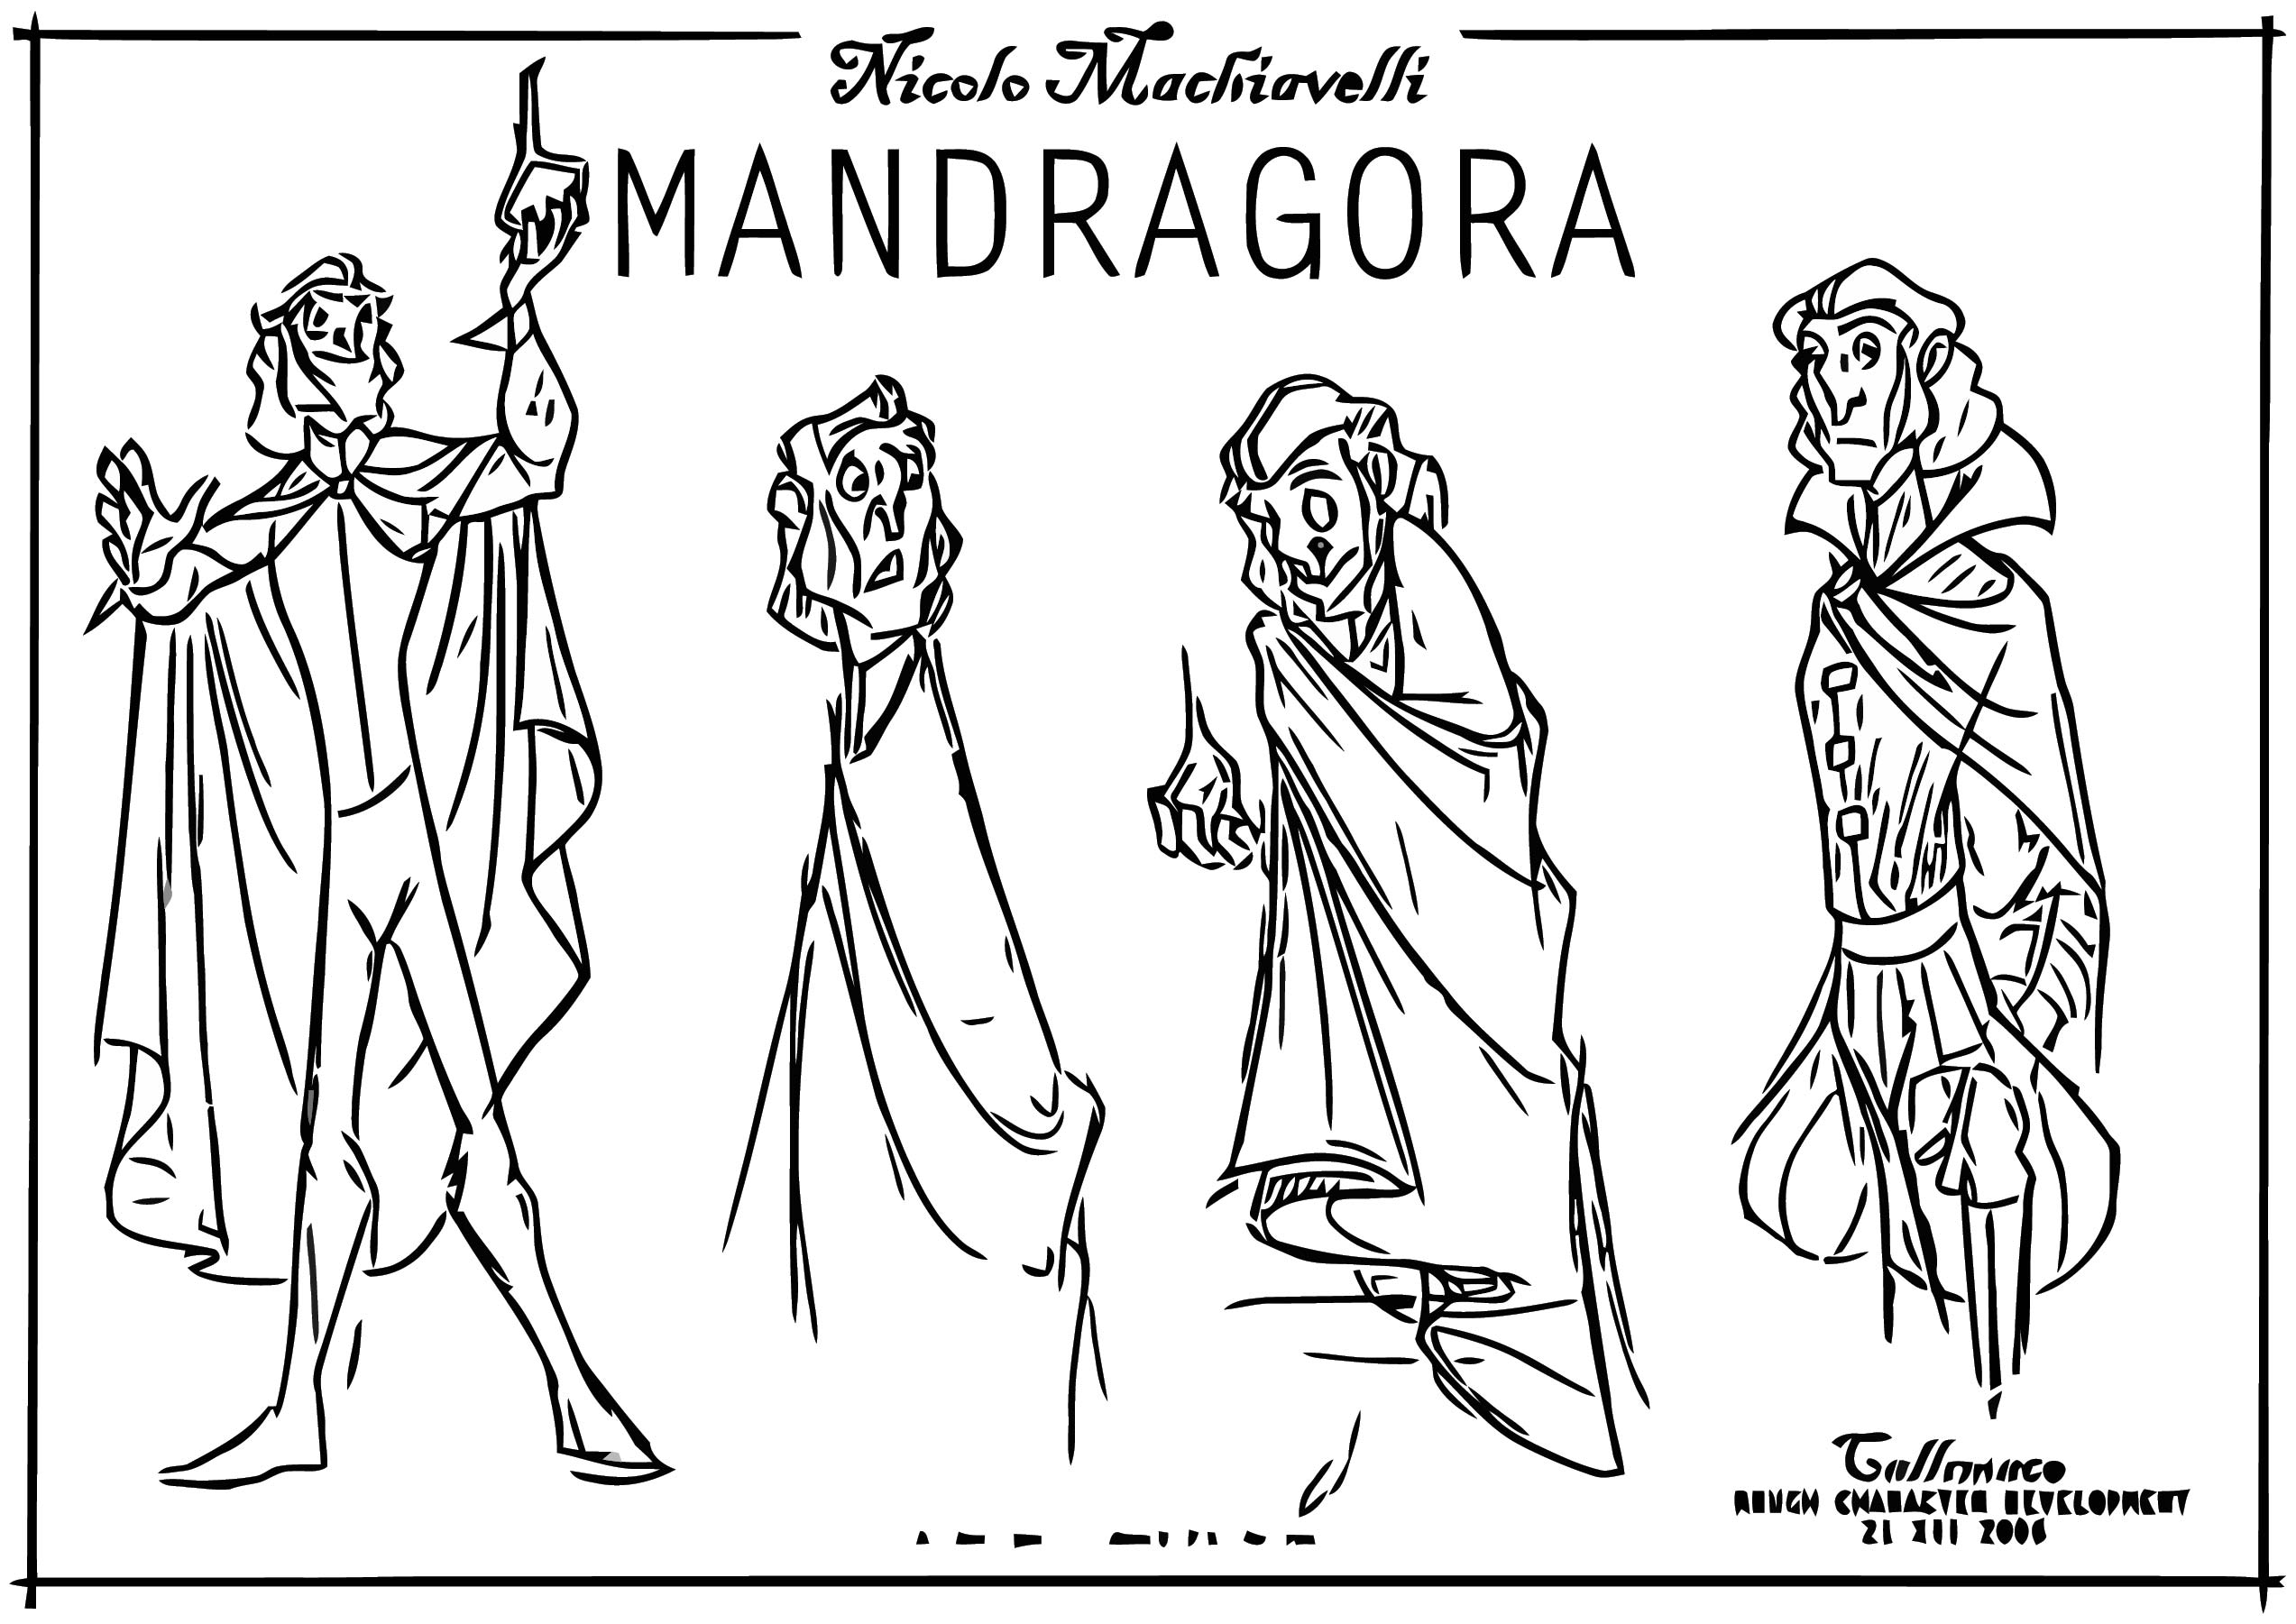 Mand Callimaco Development 01 Ch Cartoonize Coloring Page ...